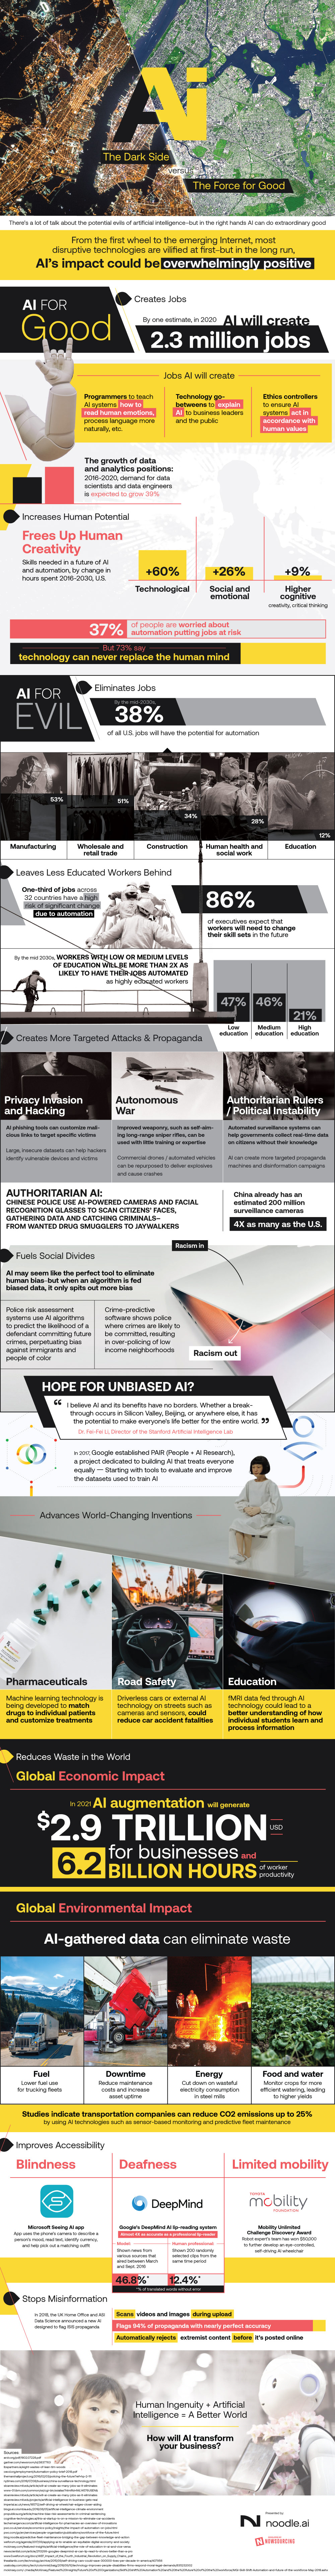 AI for Evil or AI for Good: Getting the Facts Right - Infographic